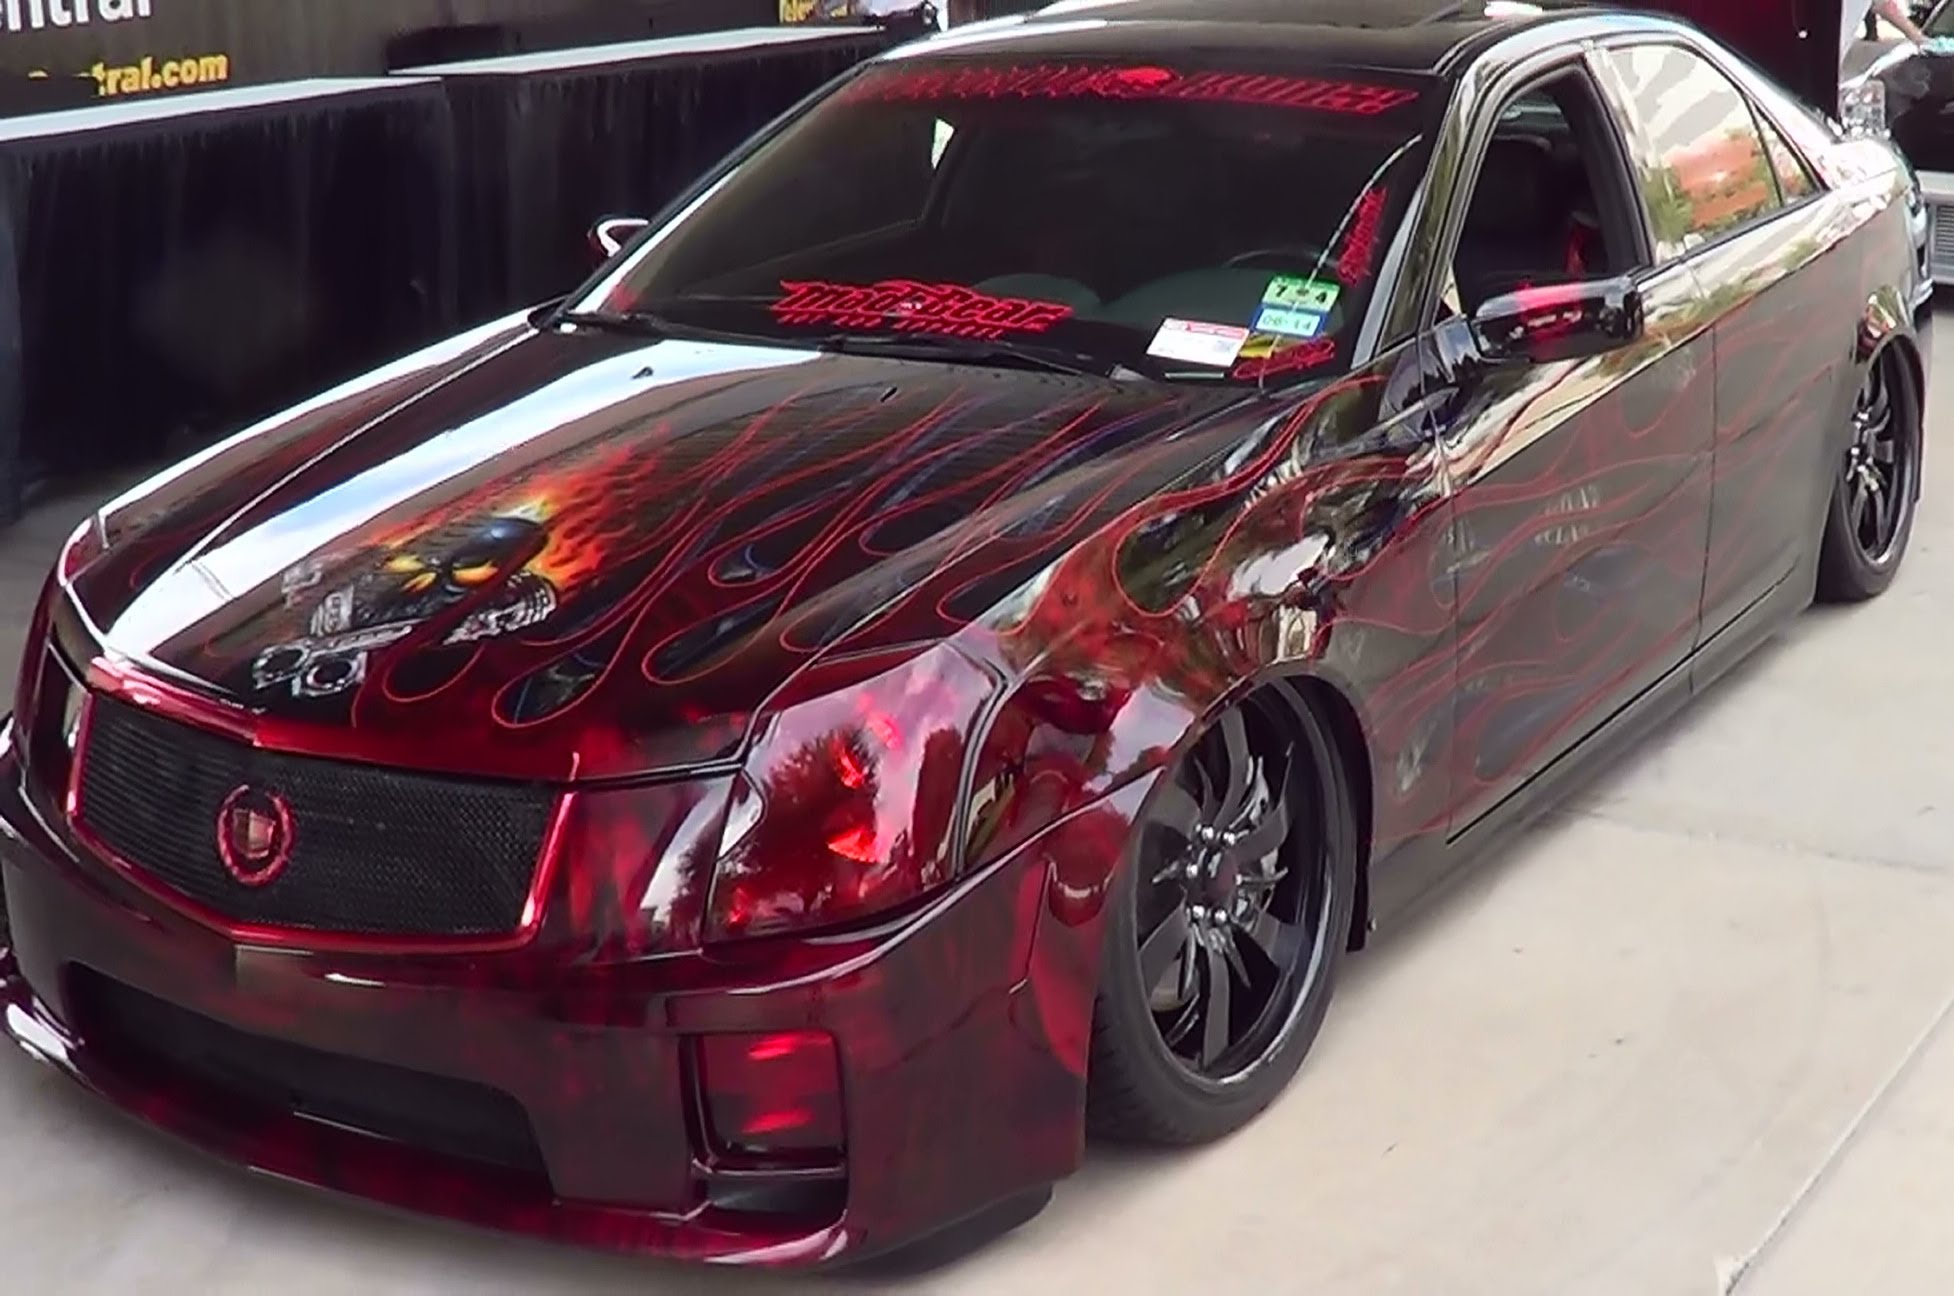 2004 Cadillac Cts V Custom Sema 2014 Scottiedtv Coolest Cars On The Web